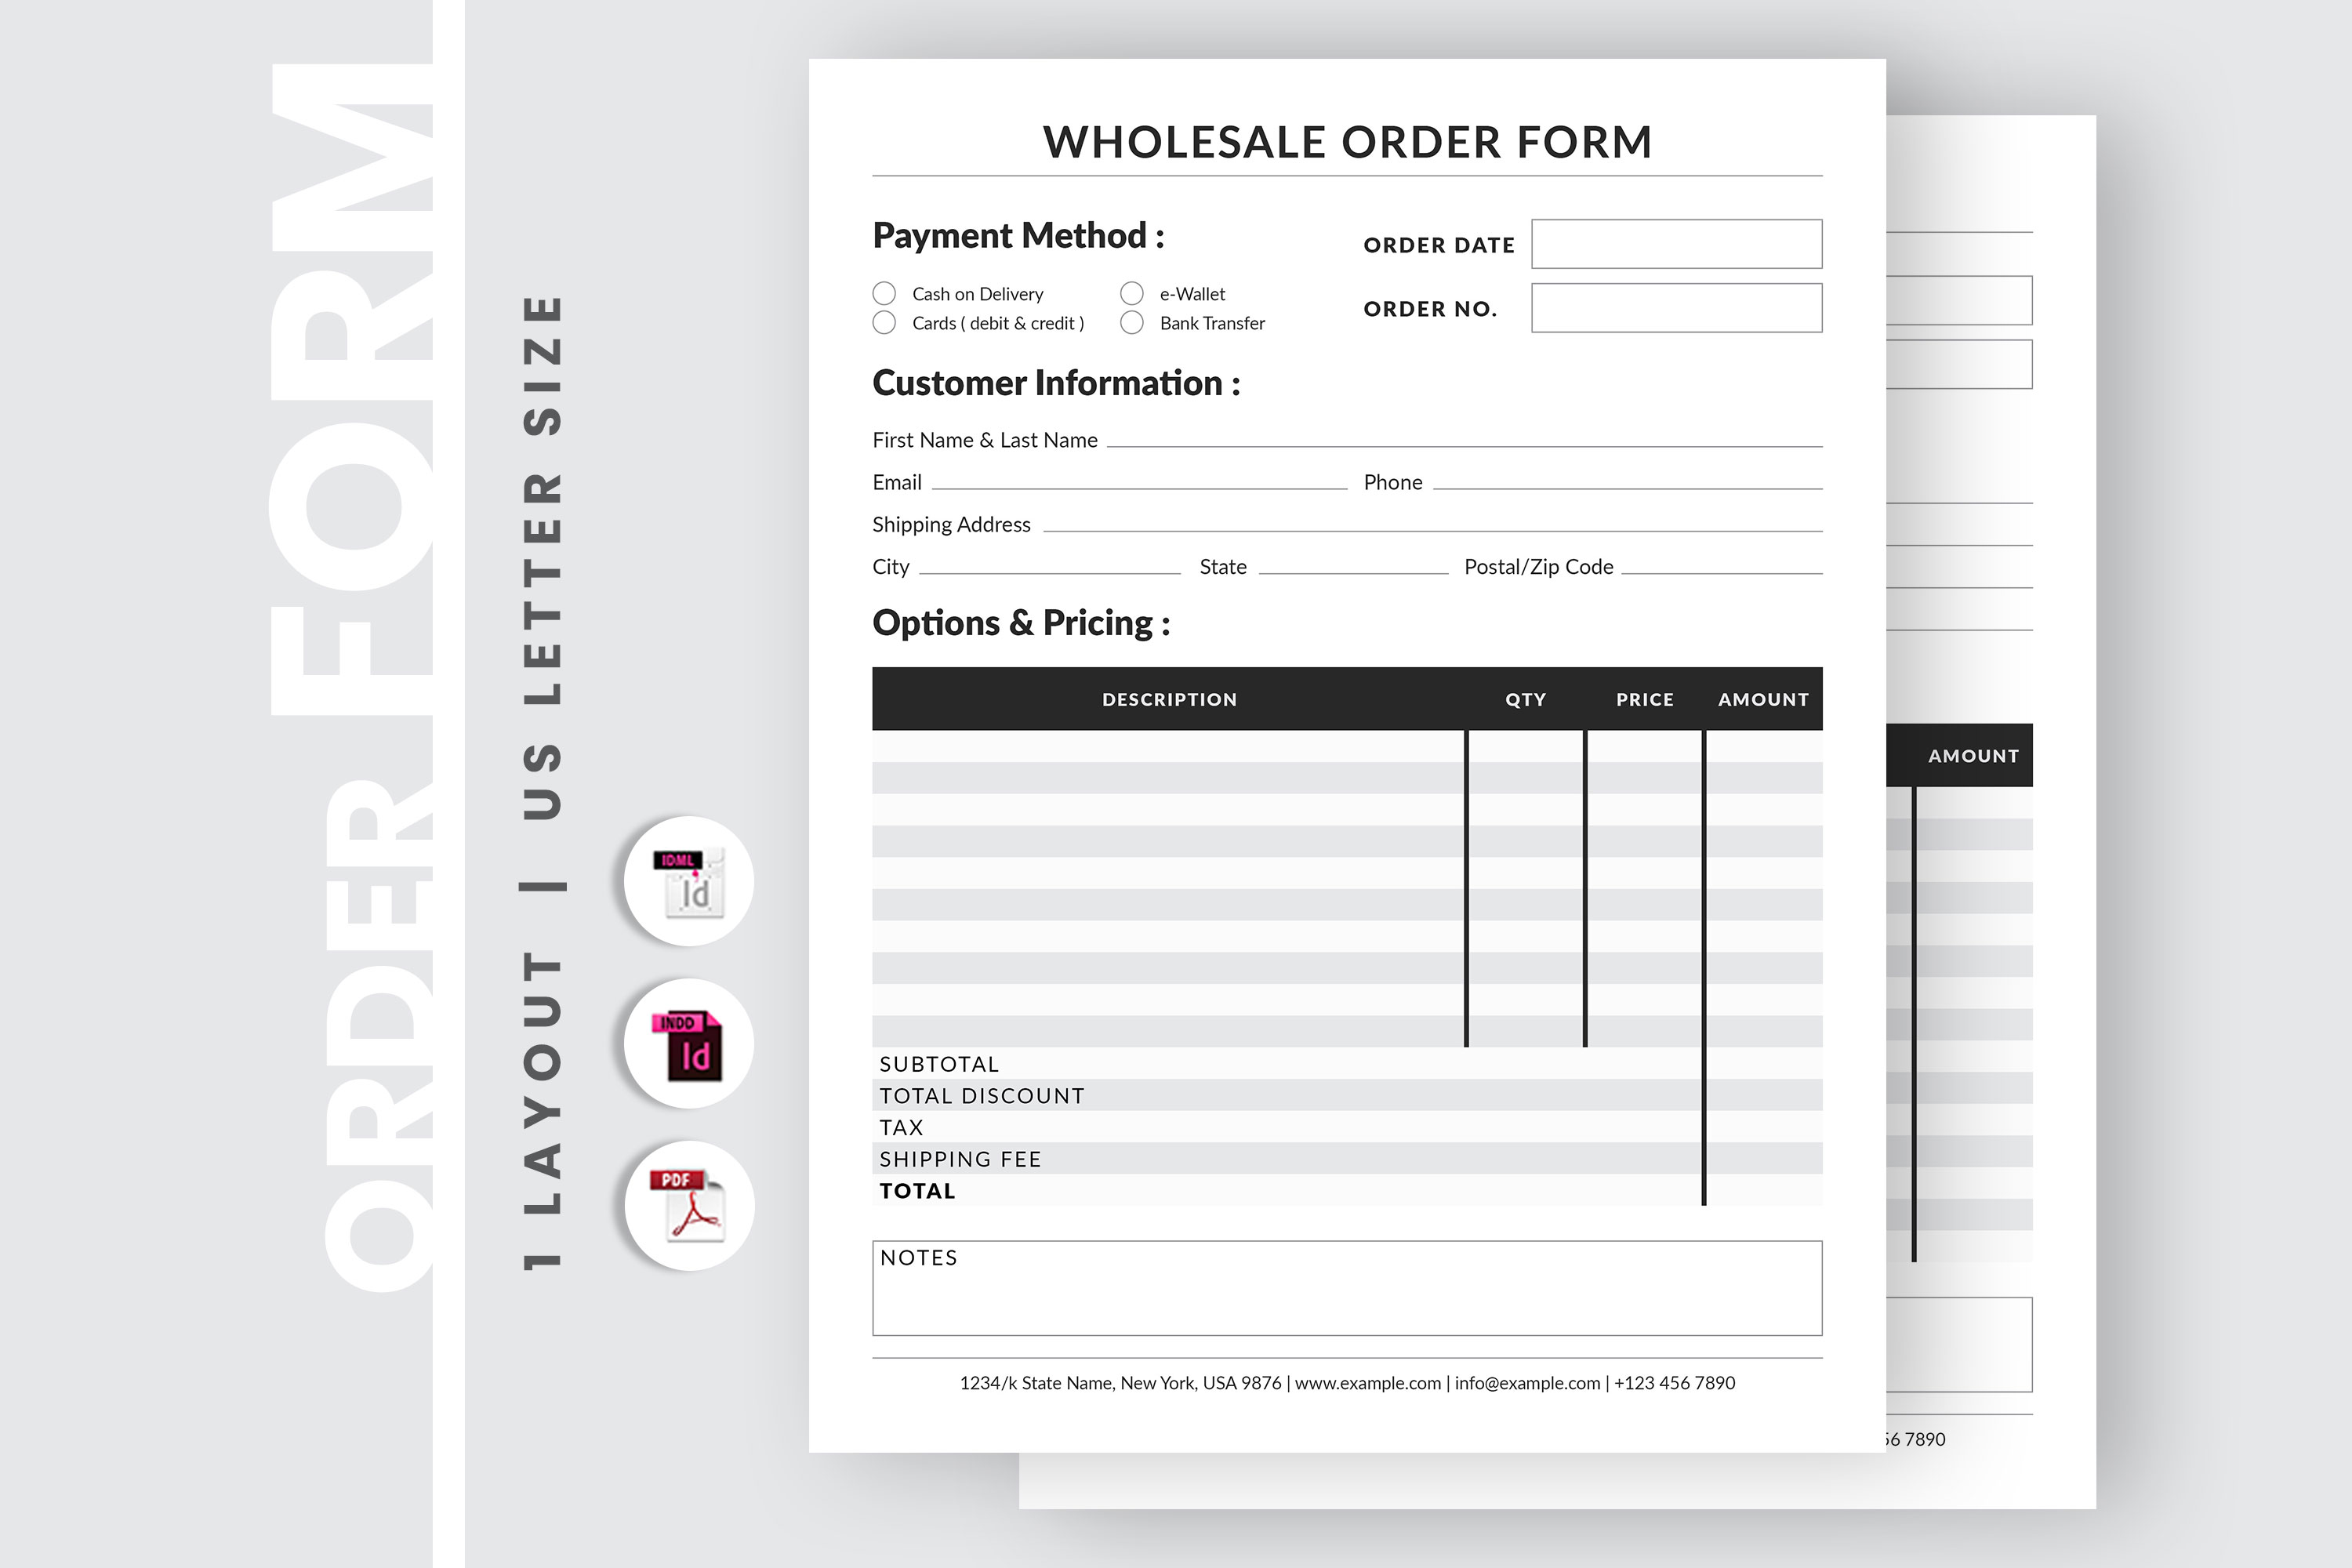 Editable Wholesale Order Form Template example image 2